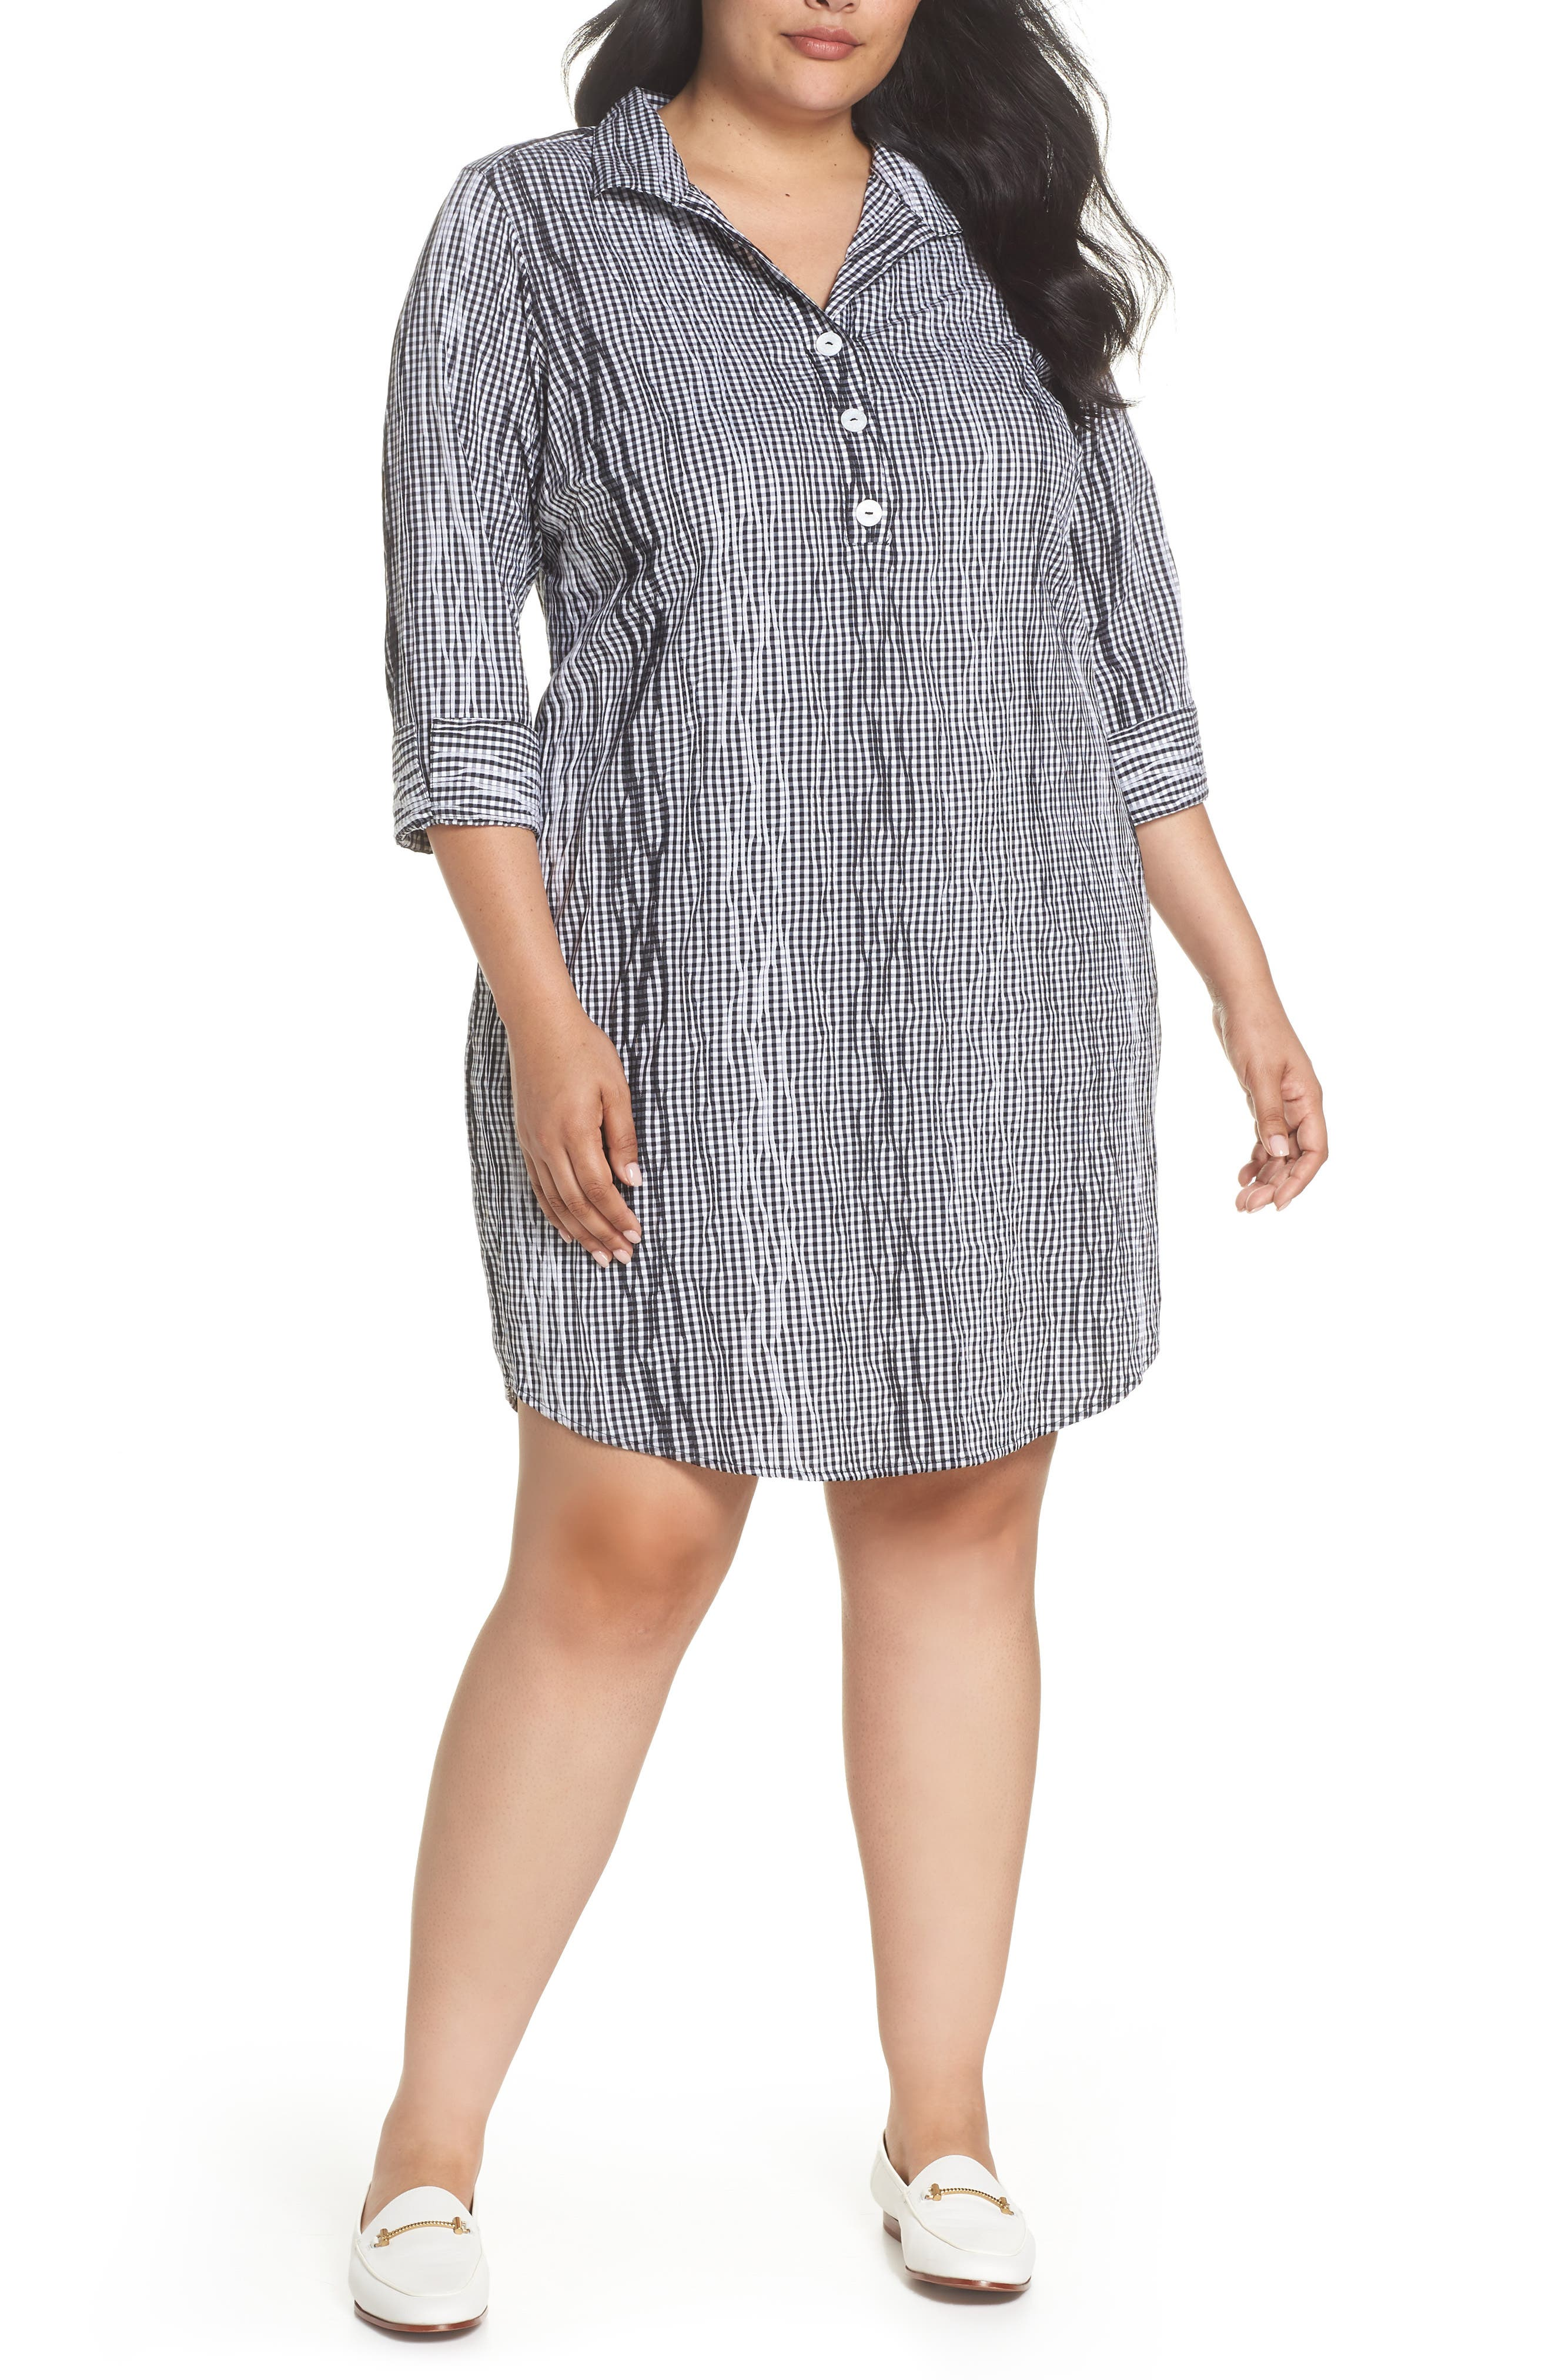 Miri Crinkle Gingham Shirtdress,                         Main,                         color, 001